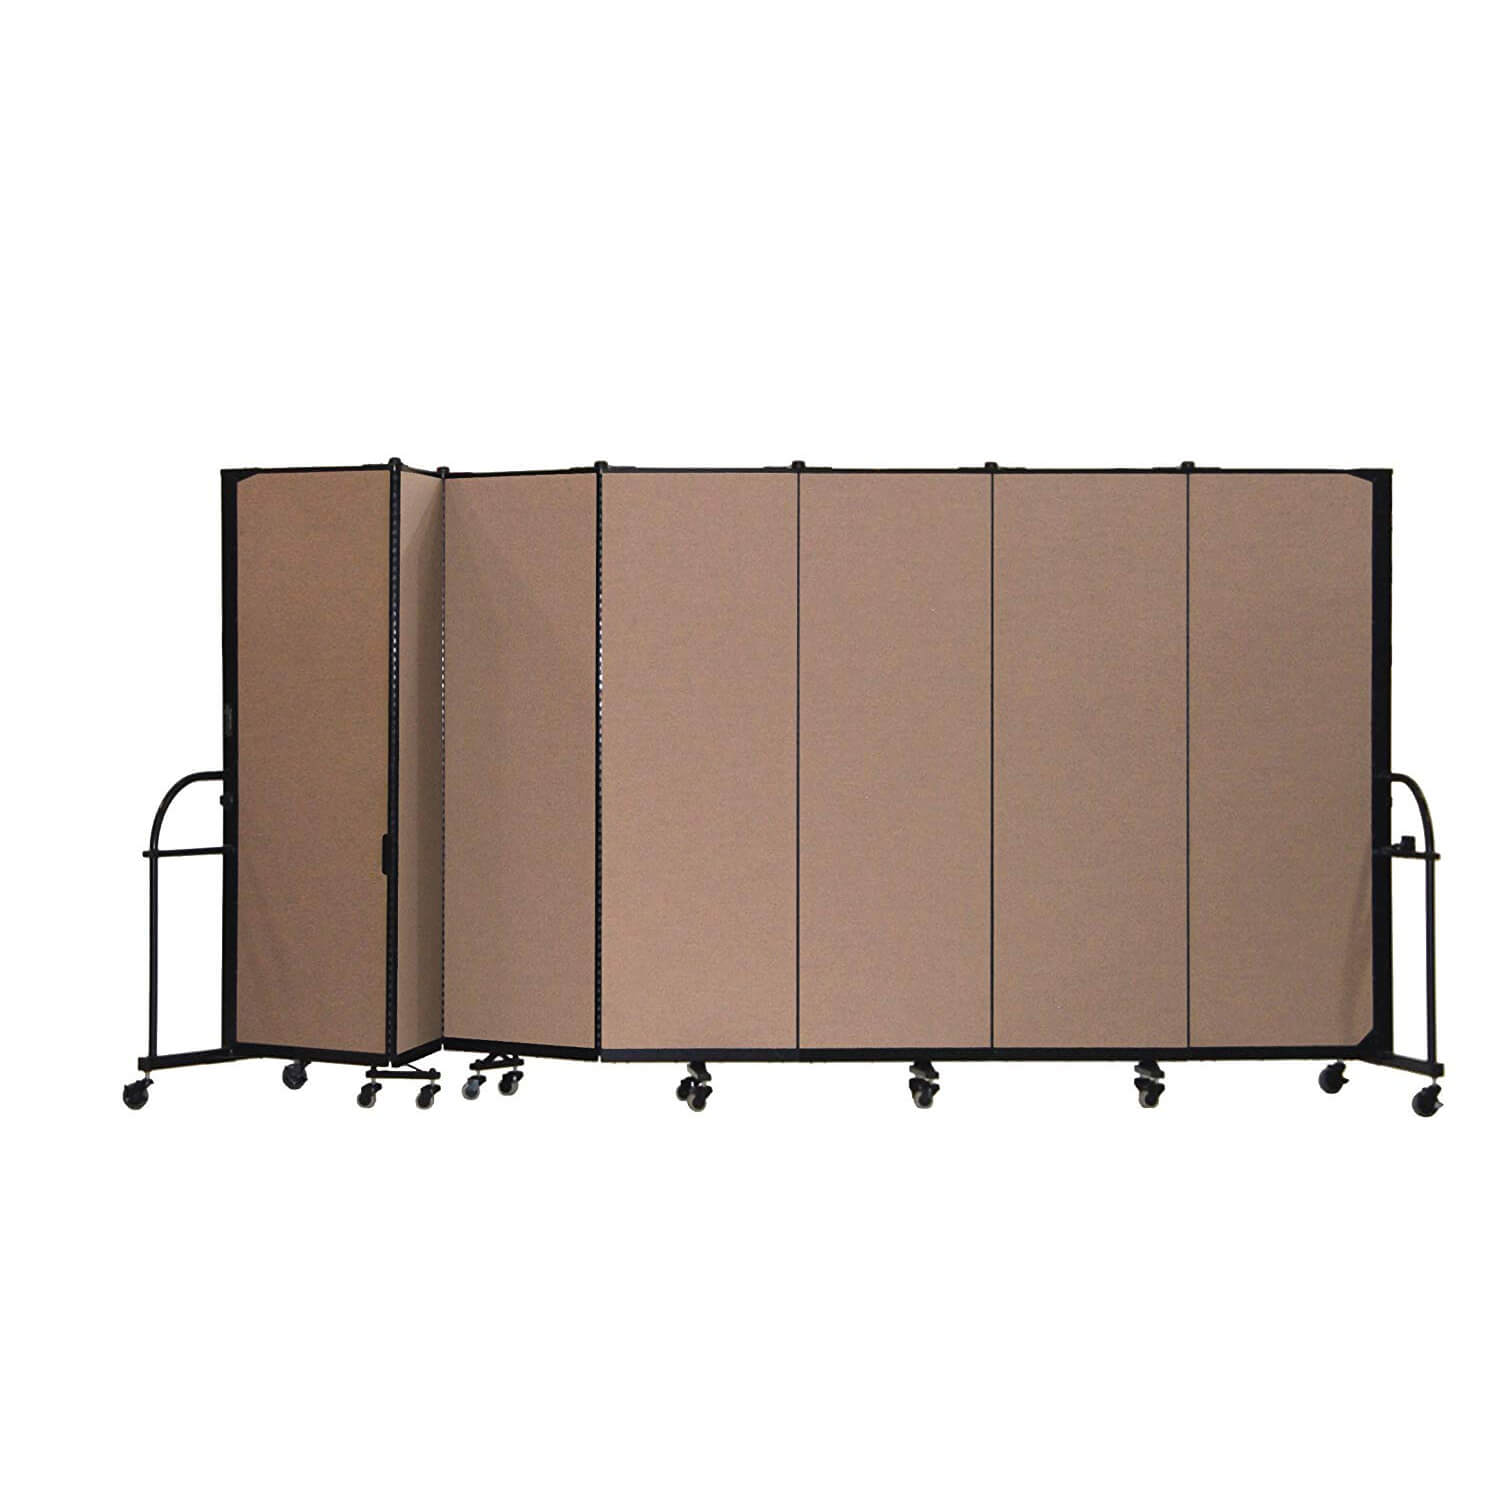 Panel room dividers CUB QSCFSL607DO RCS